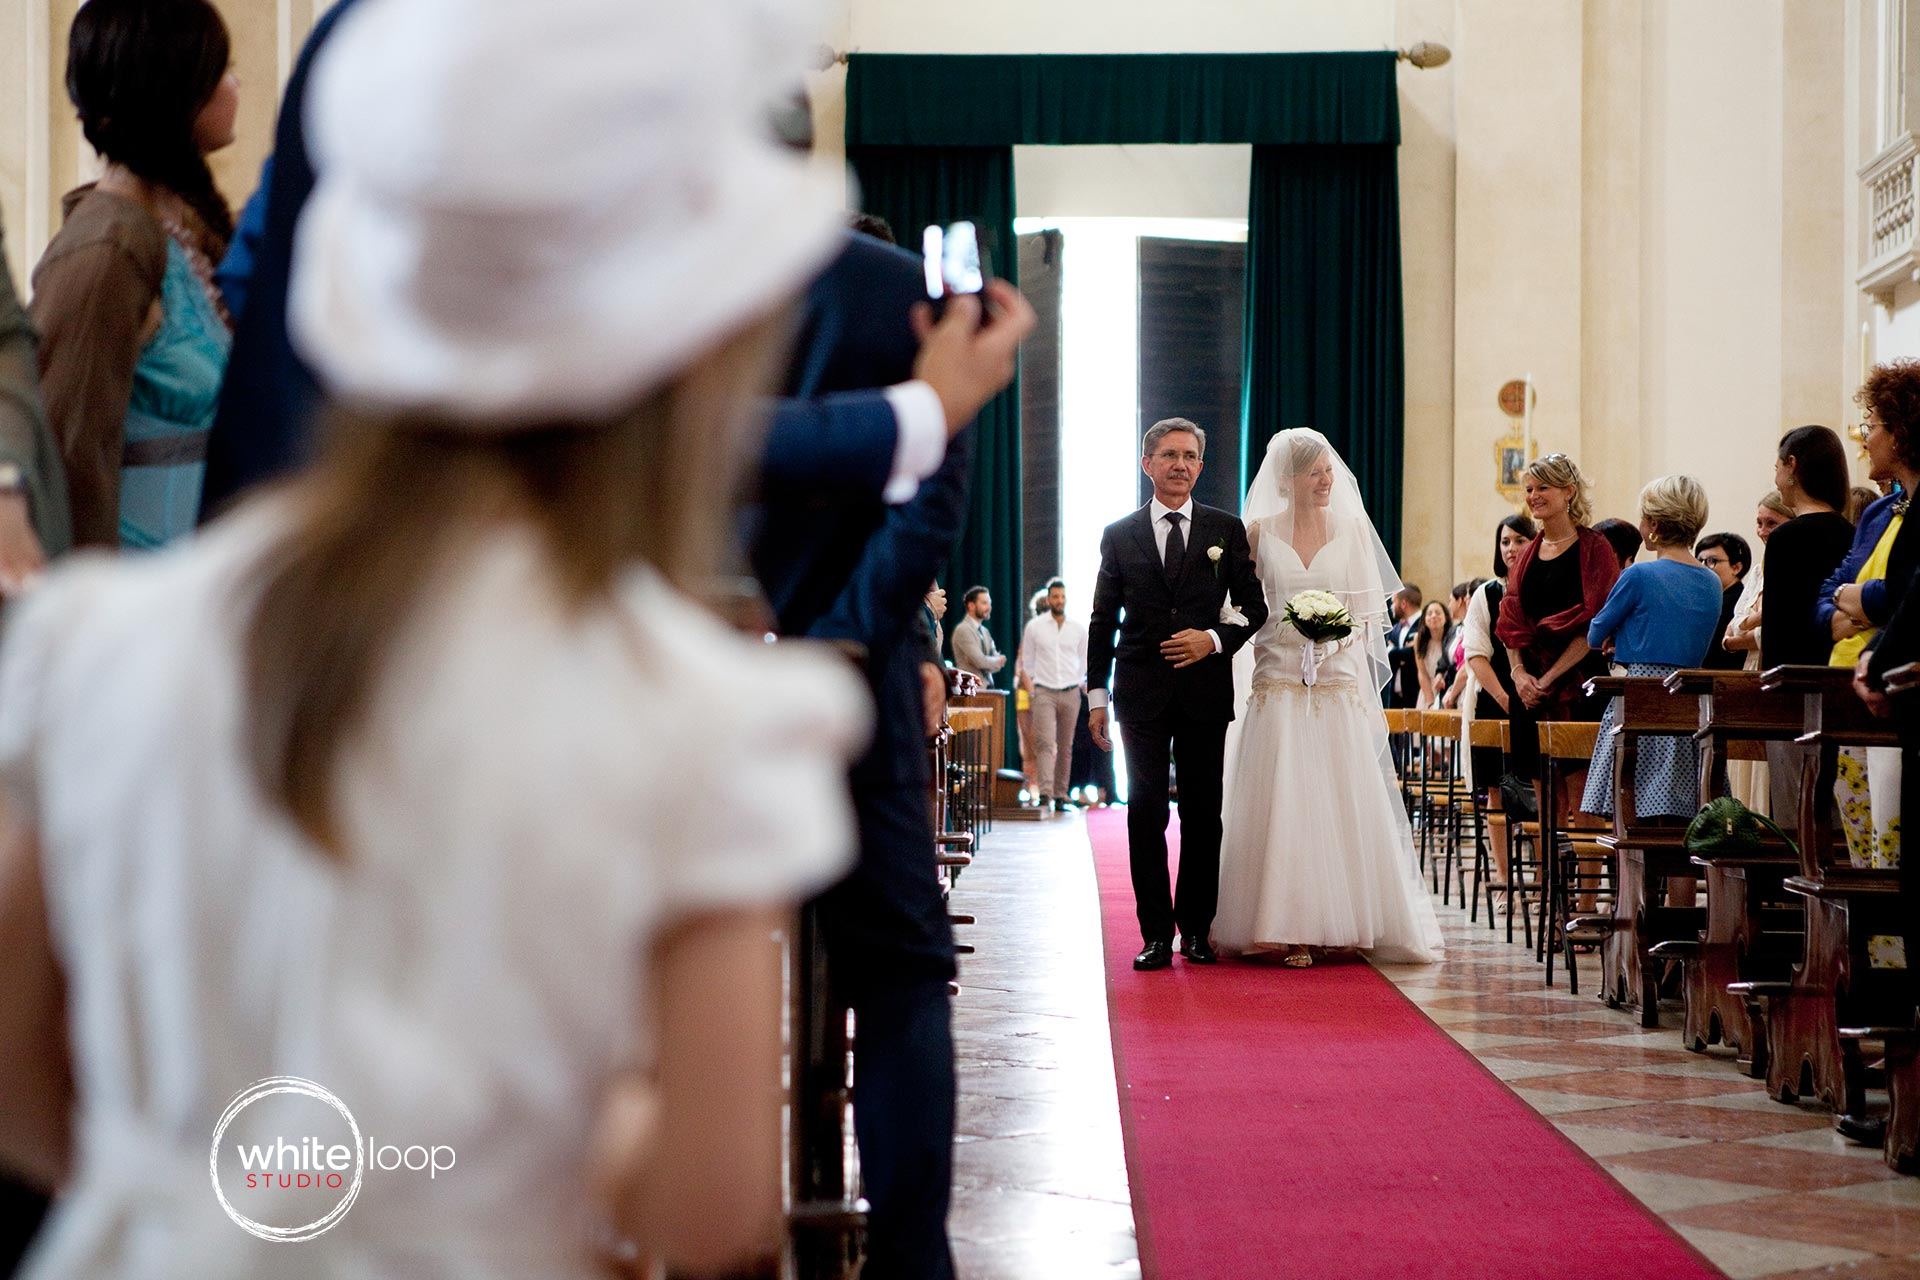 The bride is brought to the altar by the main aisle by her father to deliver her with the groom.